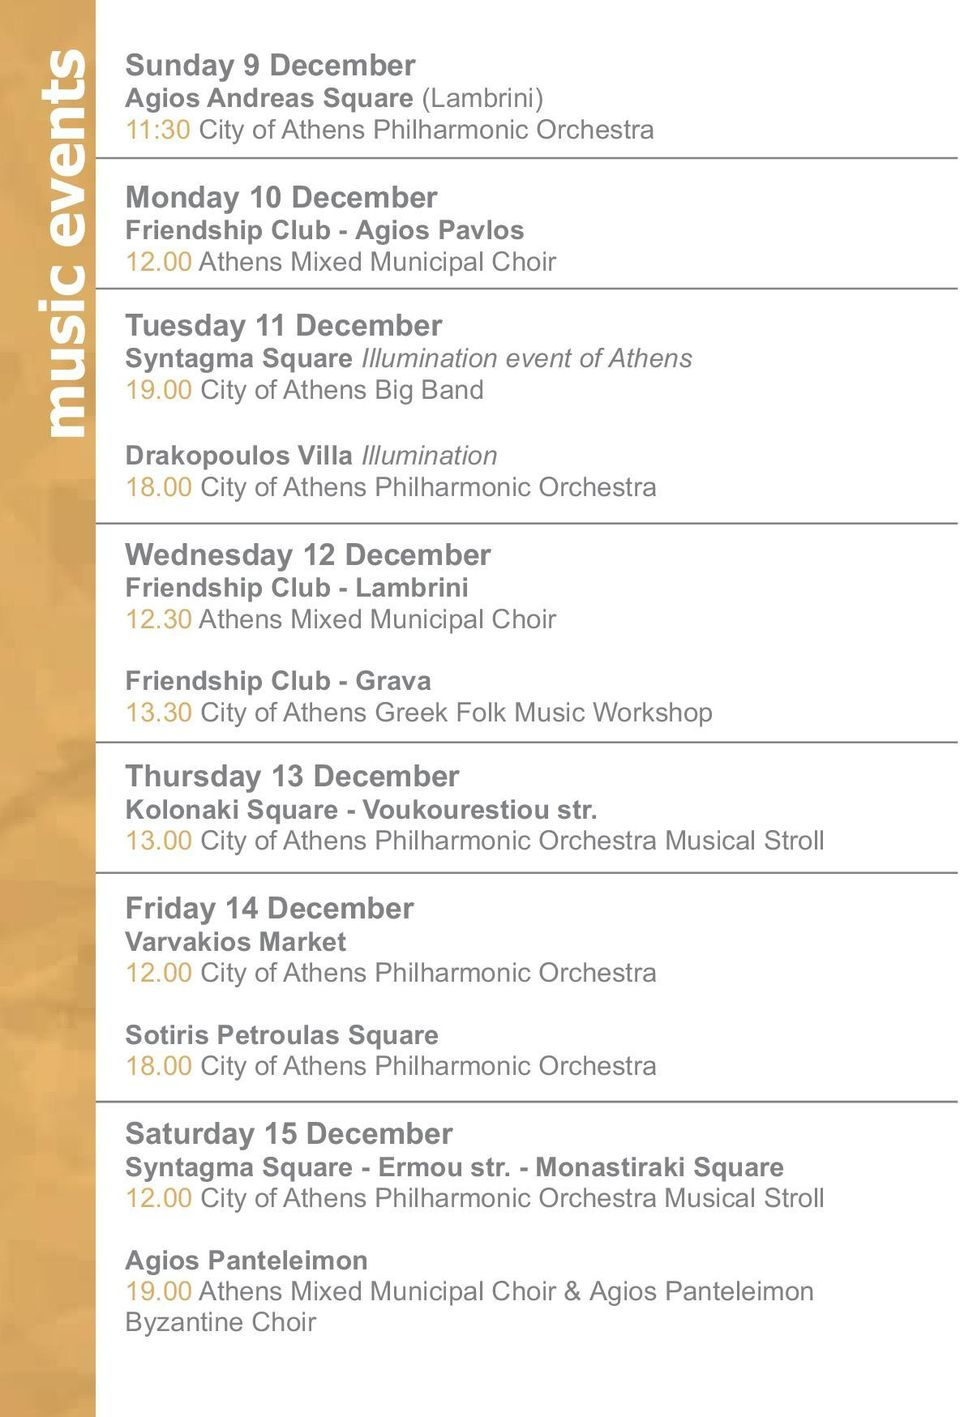 00 City of Athens Philharmonic Orchestra Wednesday 12 December Friendship Club - Lambrini 12.30 Athens Mixed Municipal Choir Friendship Club - Grava 13.